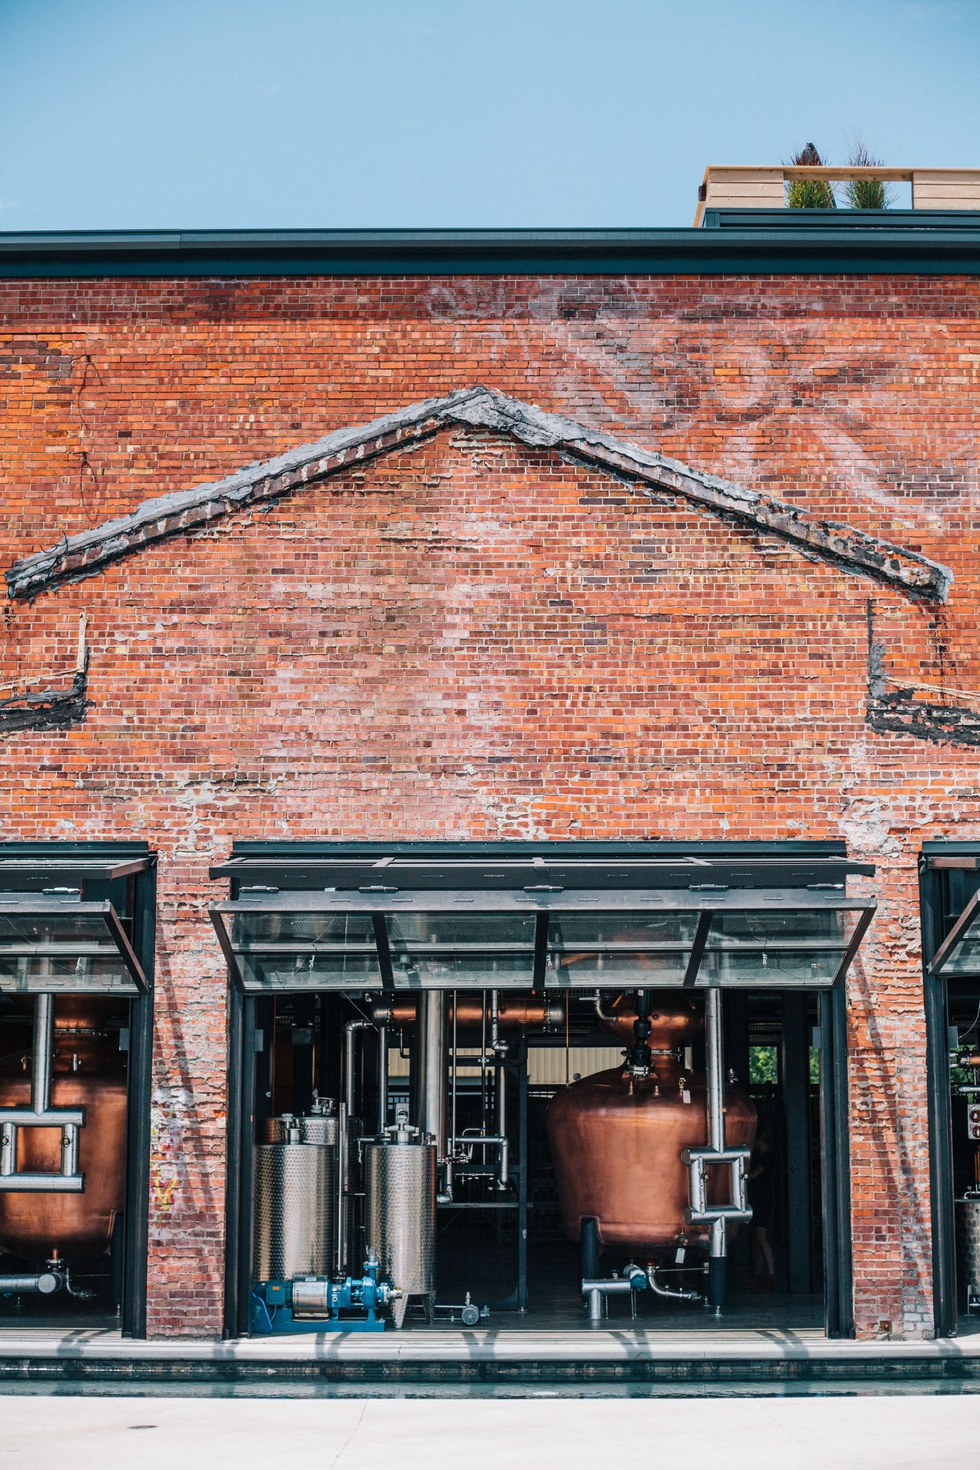 A convergence of the old and the new at the Copper & Kings distillery